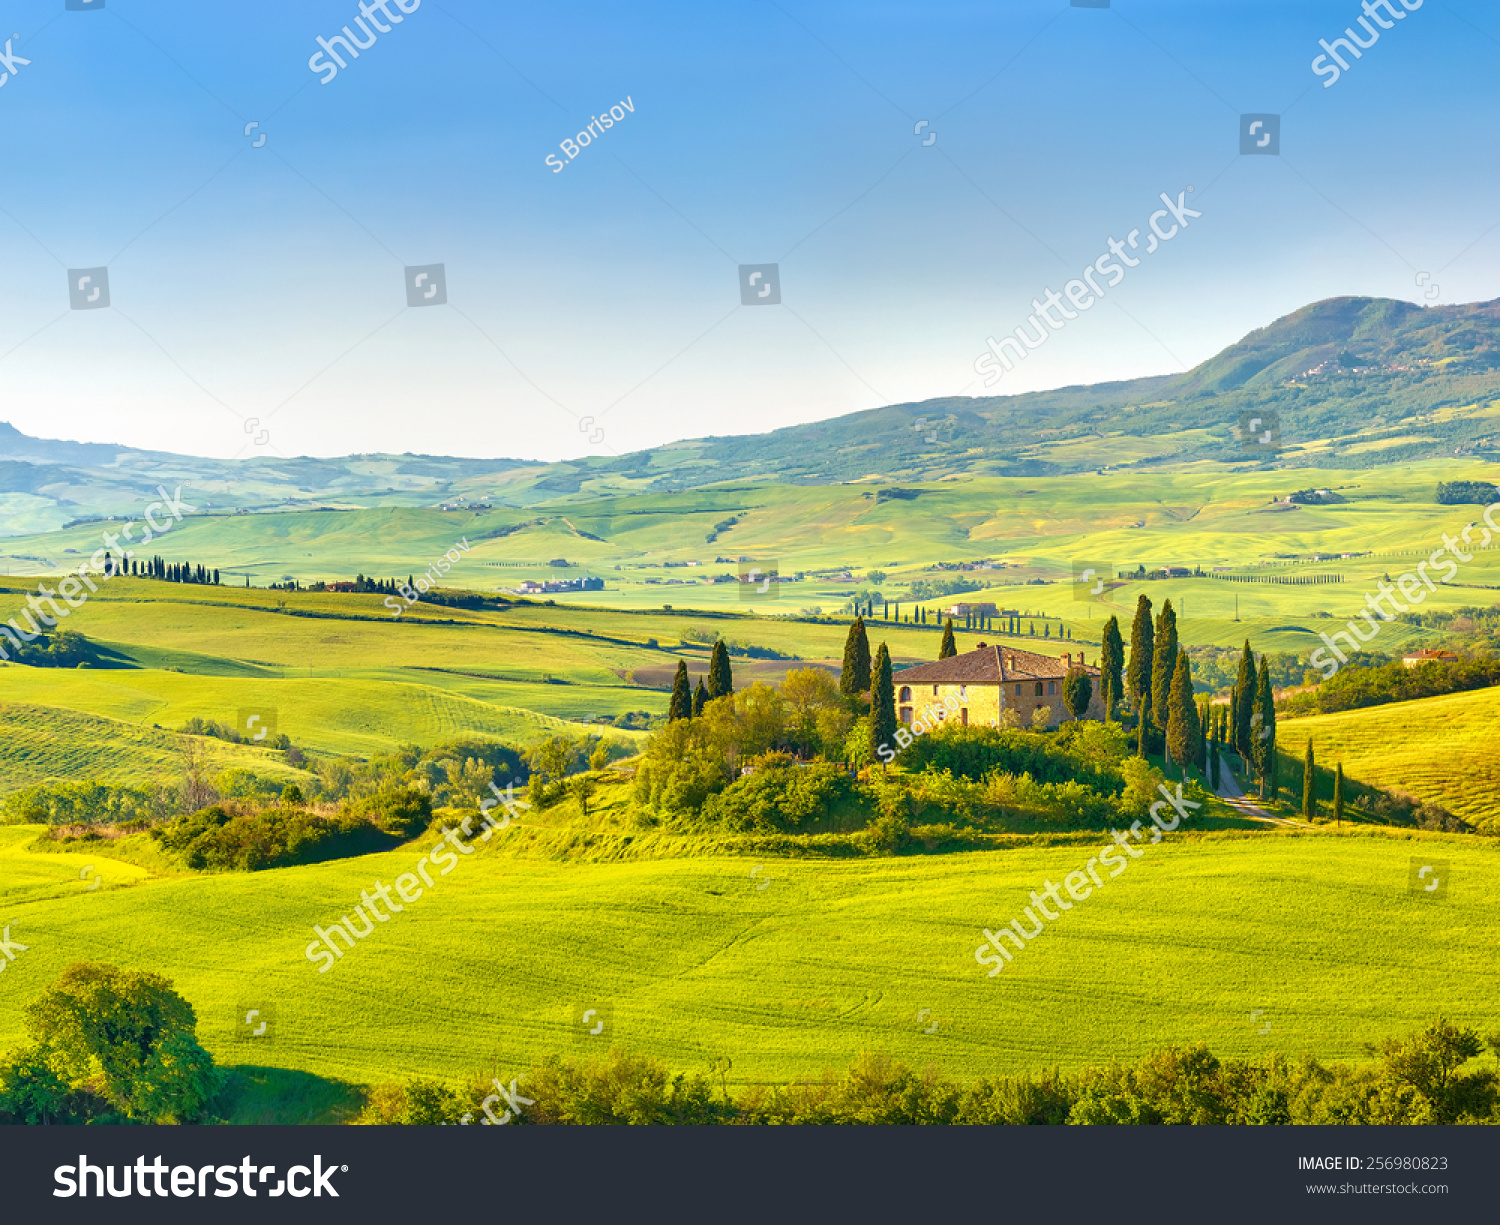 beautiful tuscany landscape italy - photo #20